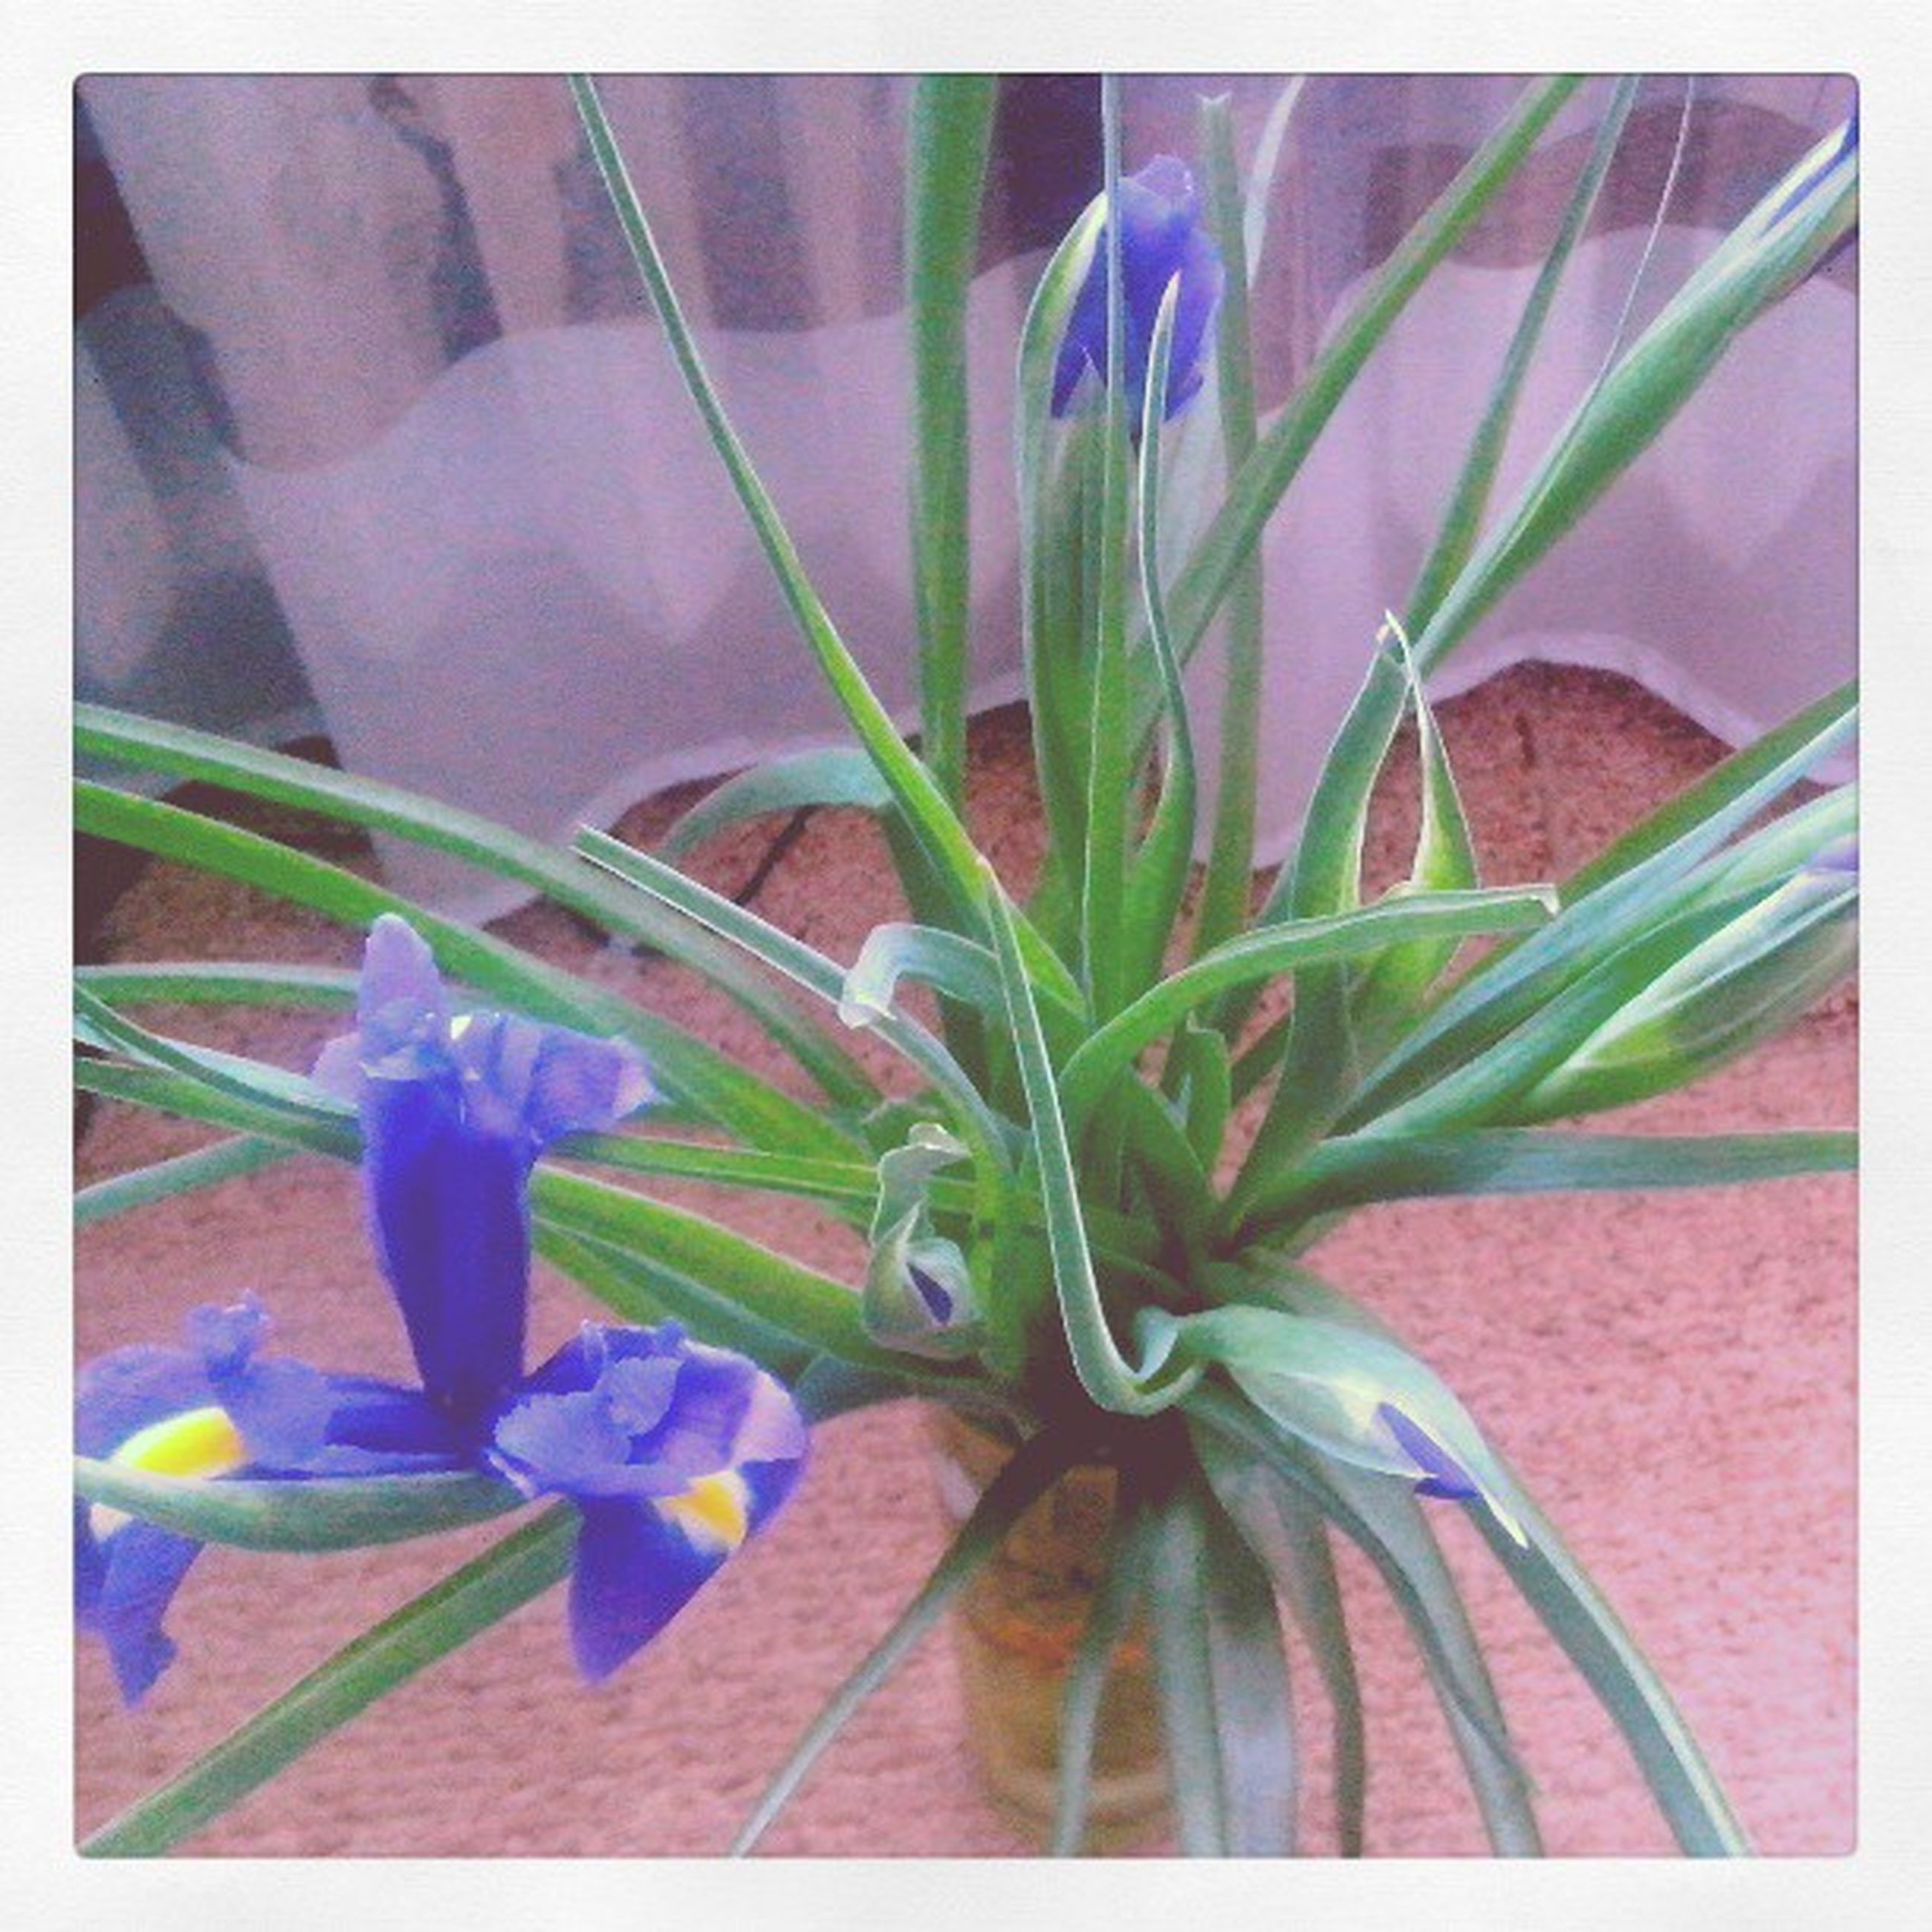 flower, transfer print, freshness, petal, fragility, flower head, growth, auto post production filter, plant, beauty in nature, purple, nature, close-up, indoors, leaf, blooming, in bloom, stem, vase, potted plant